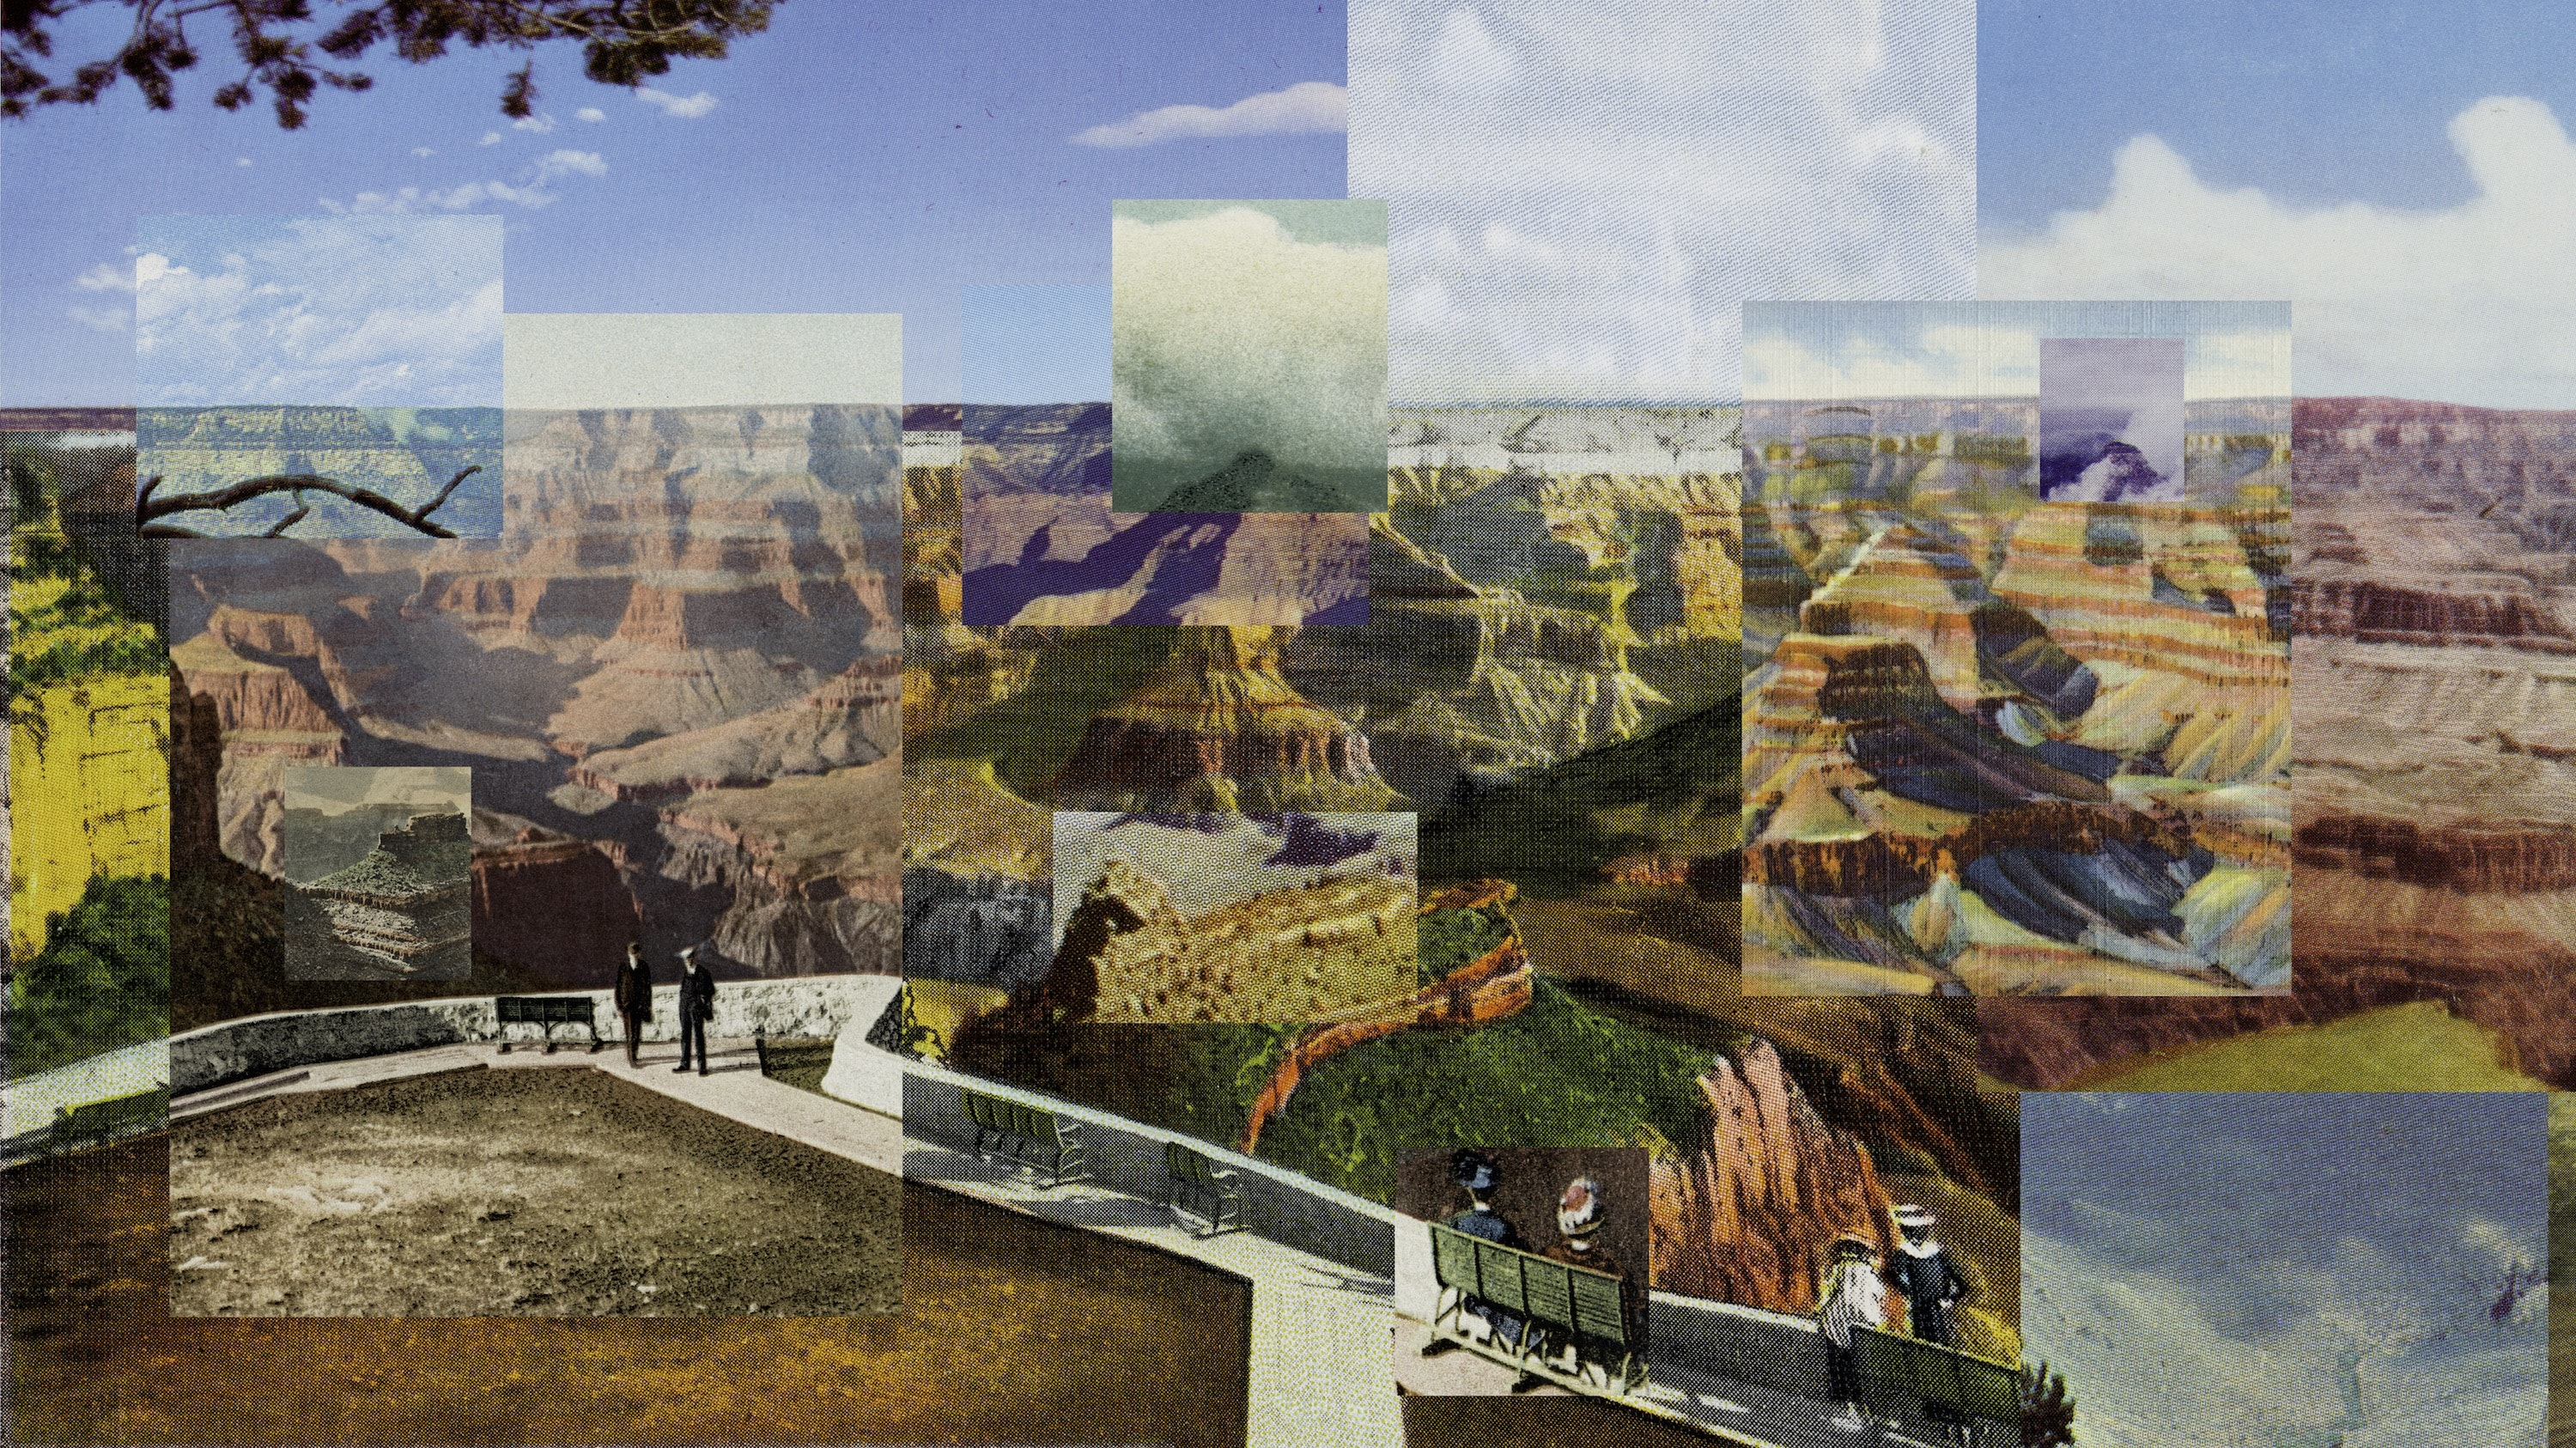 Reconstructing the view from the El Tovar to Yavapai Point using nineteen postcards